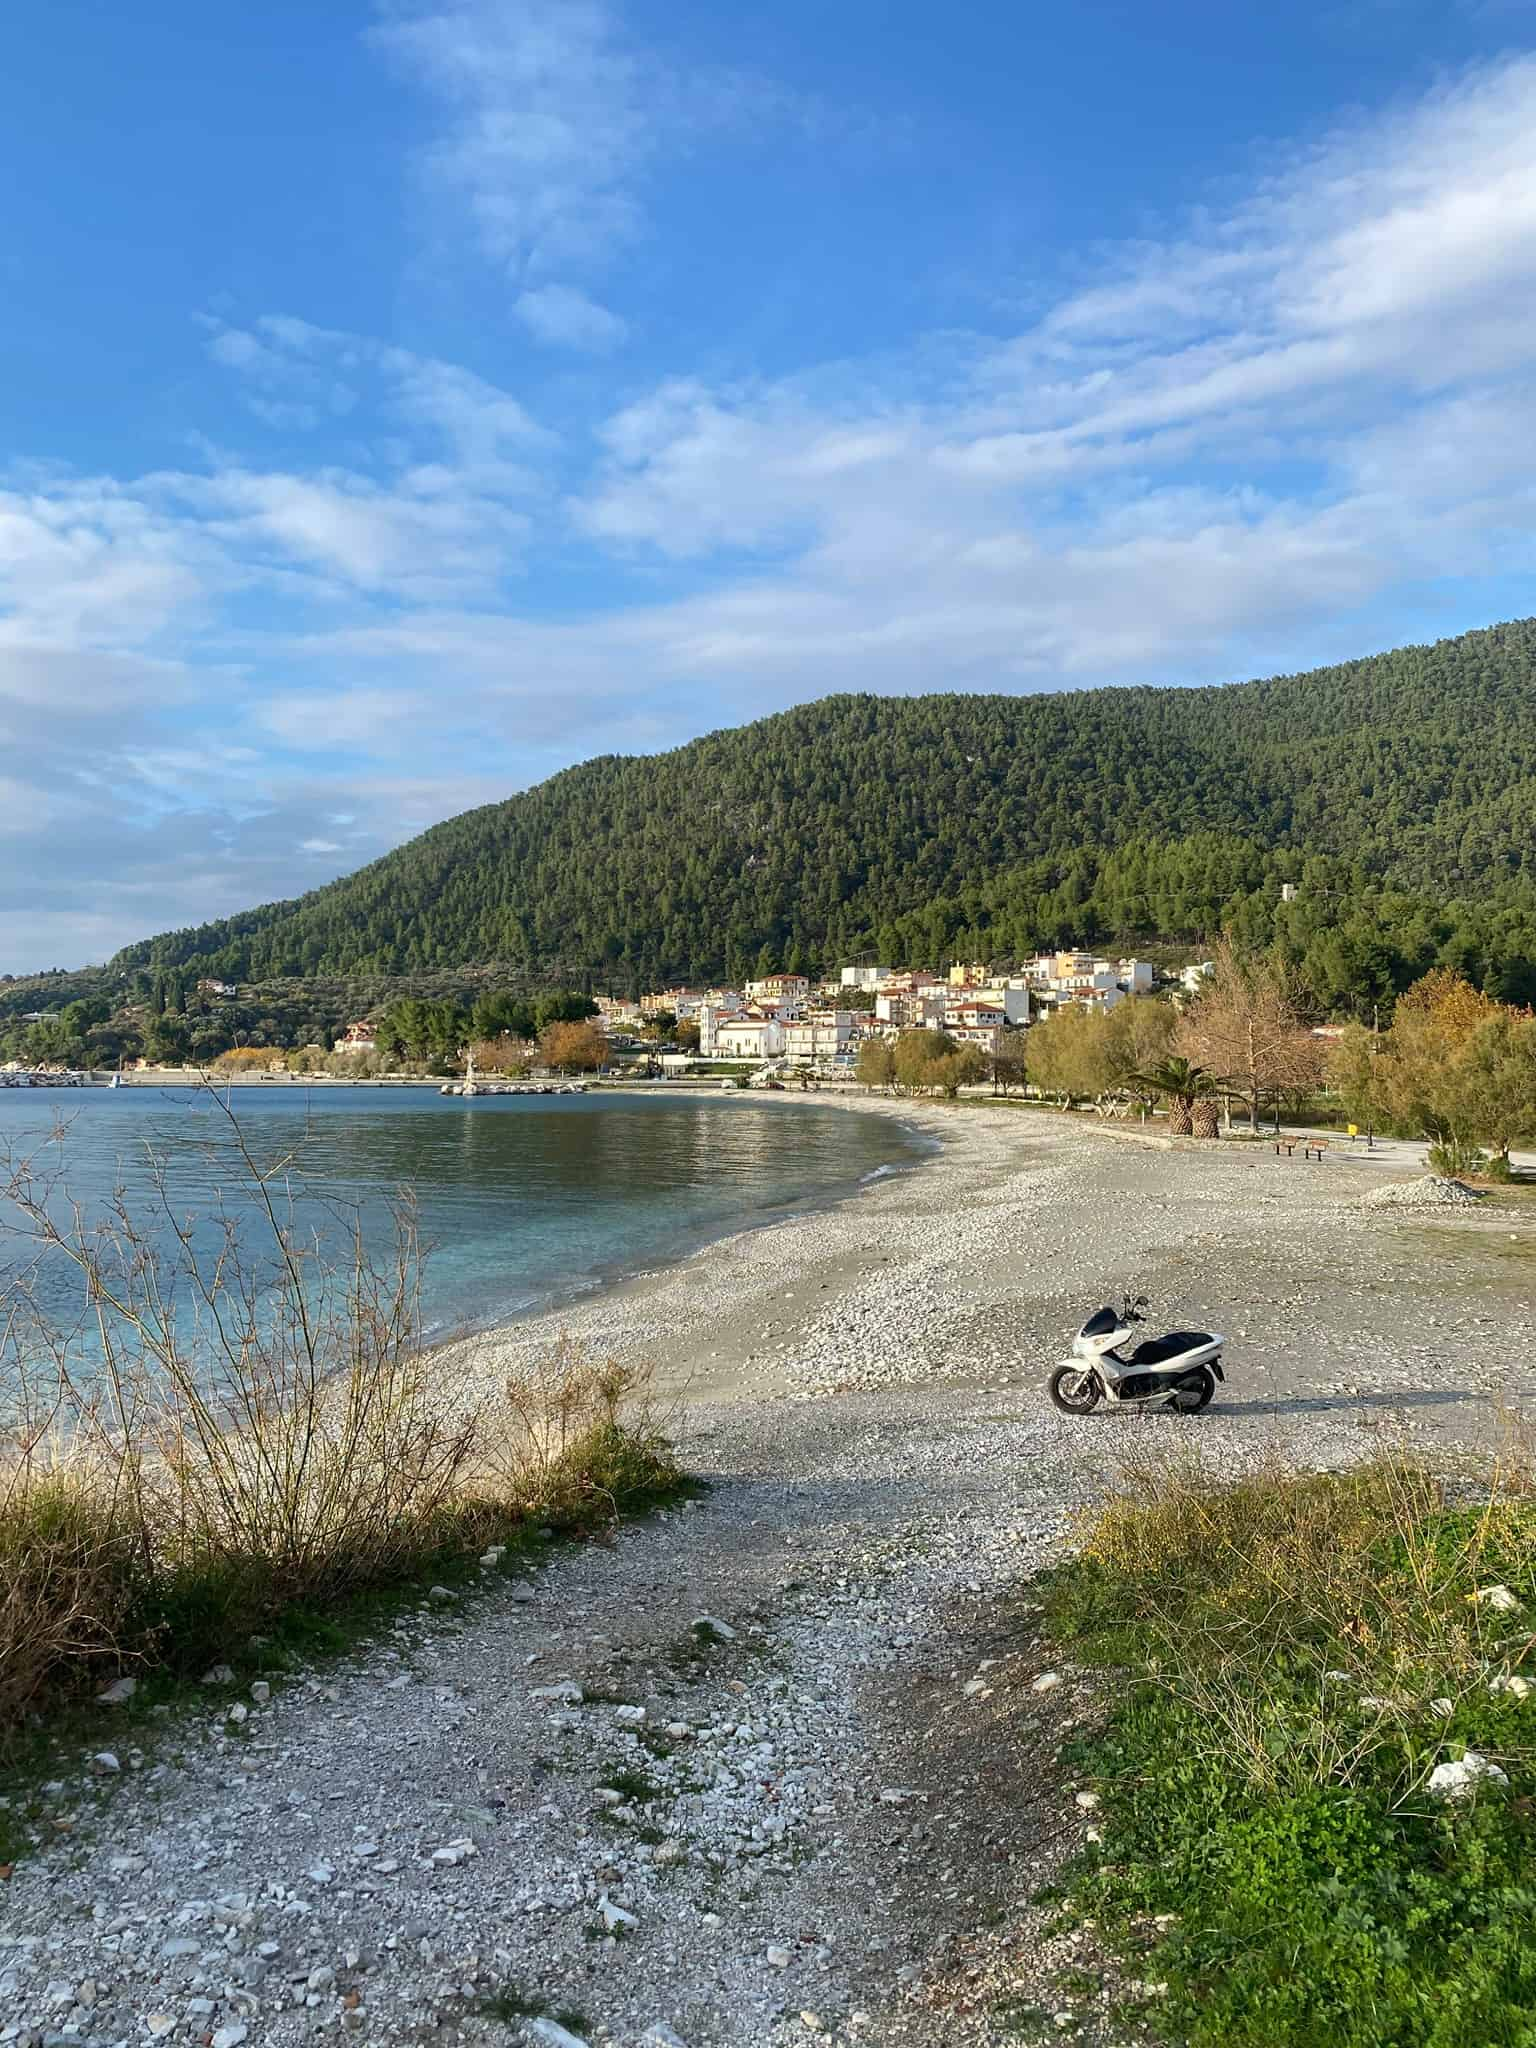 The village beach connects Neo Klima to Hovolo beach